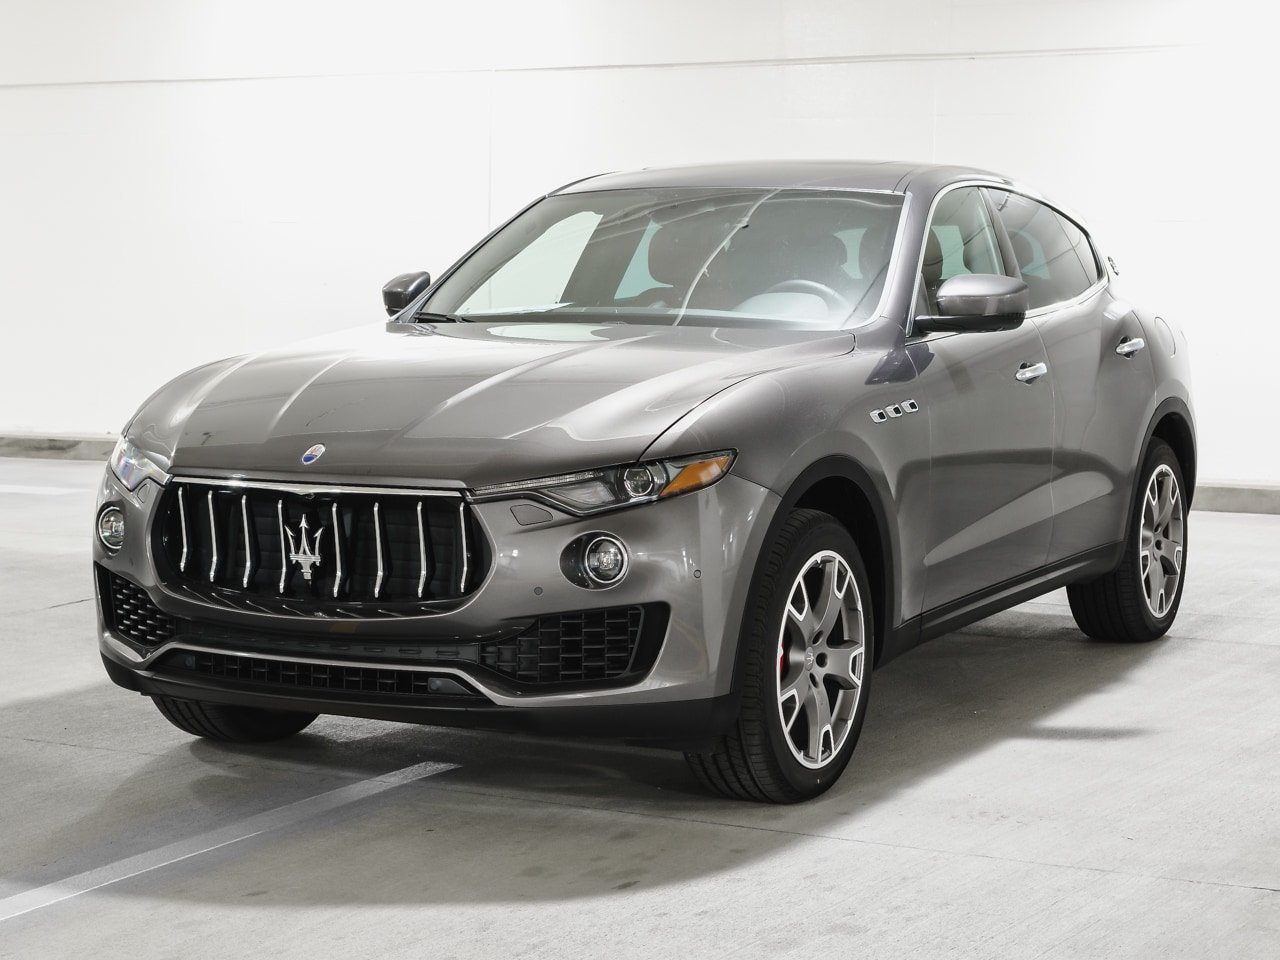 Certified Pre-Owned 2017 Maserati Levante 350hp AWD